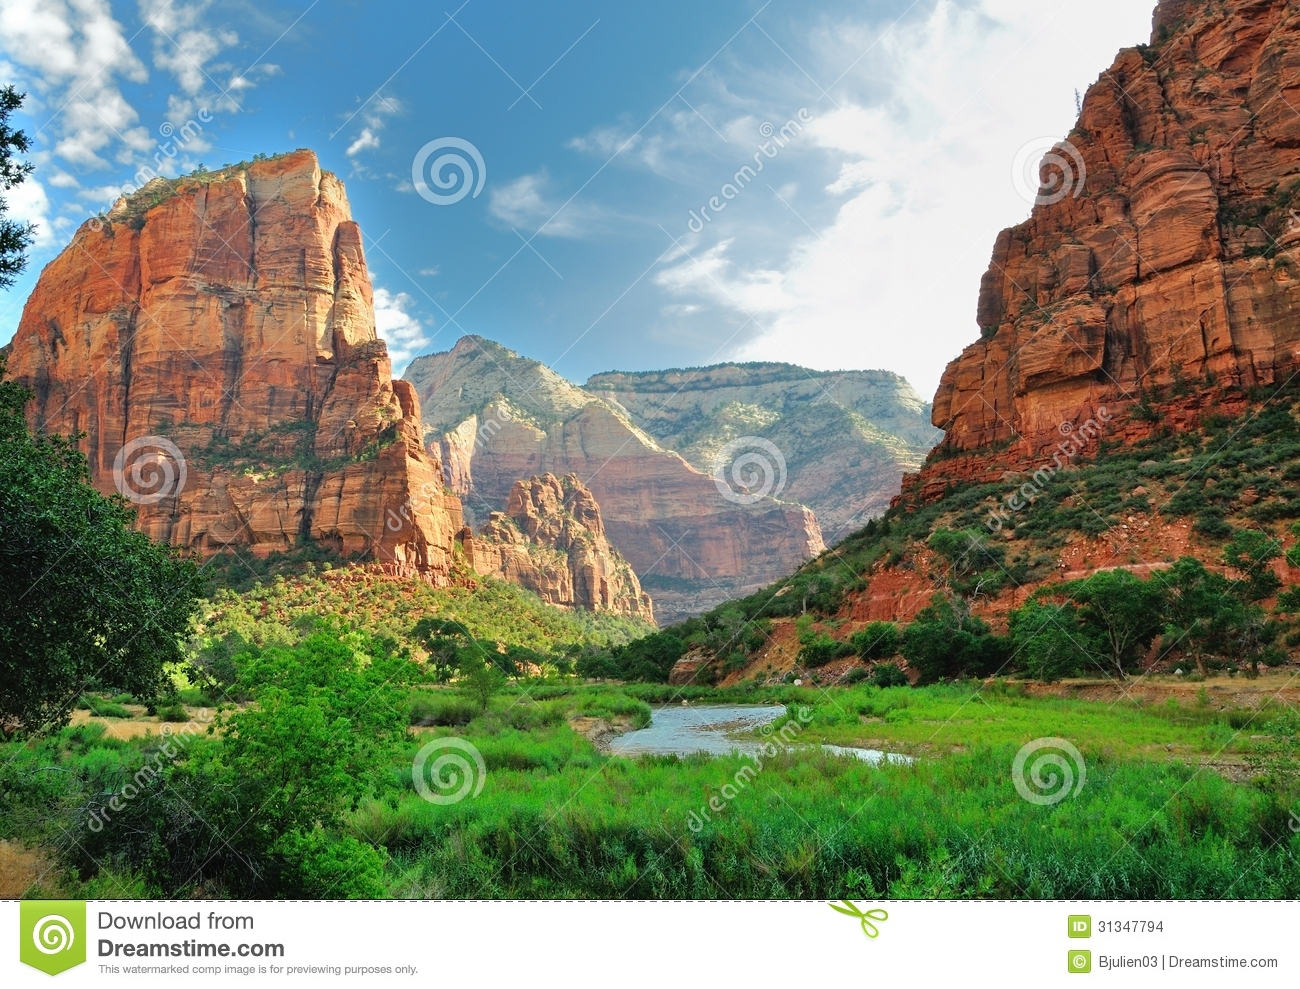 Zion Canyon, with the virgin river